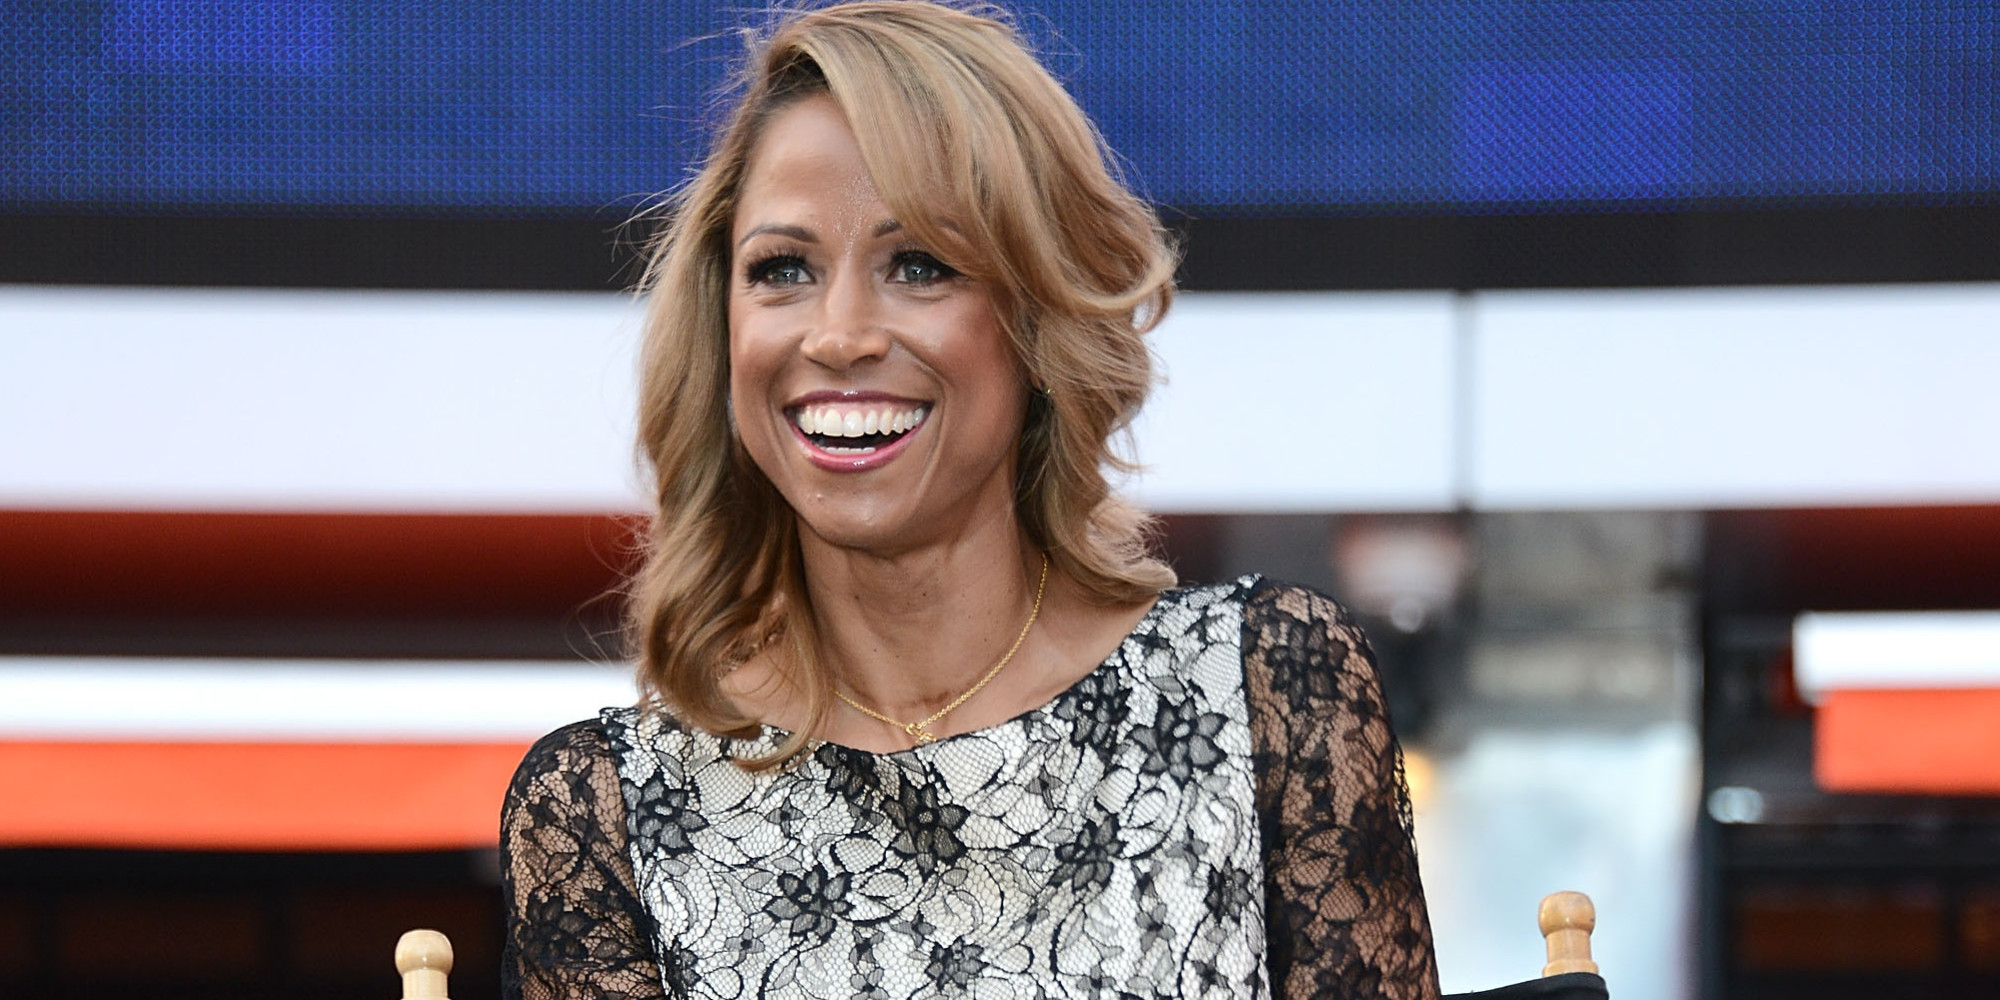 Clueless\' Star Stacey Dash Joining Fox News? | HuffPost